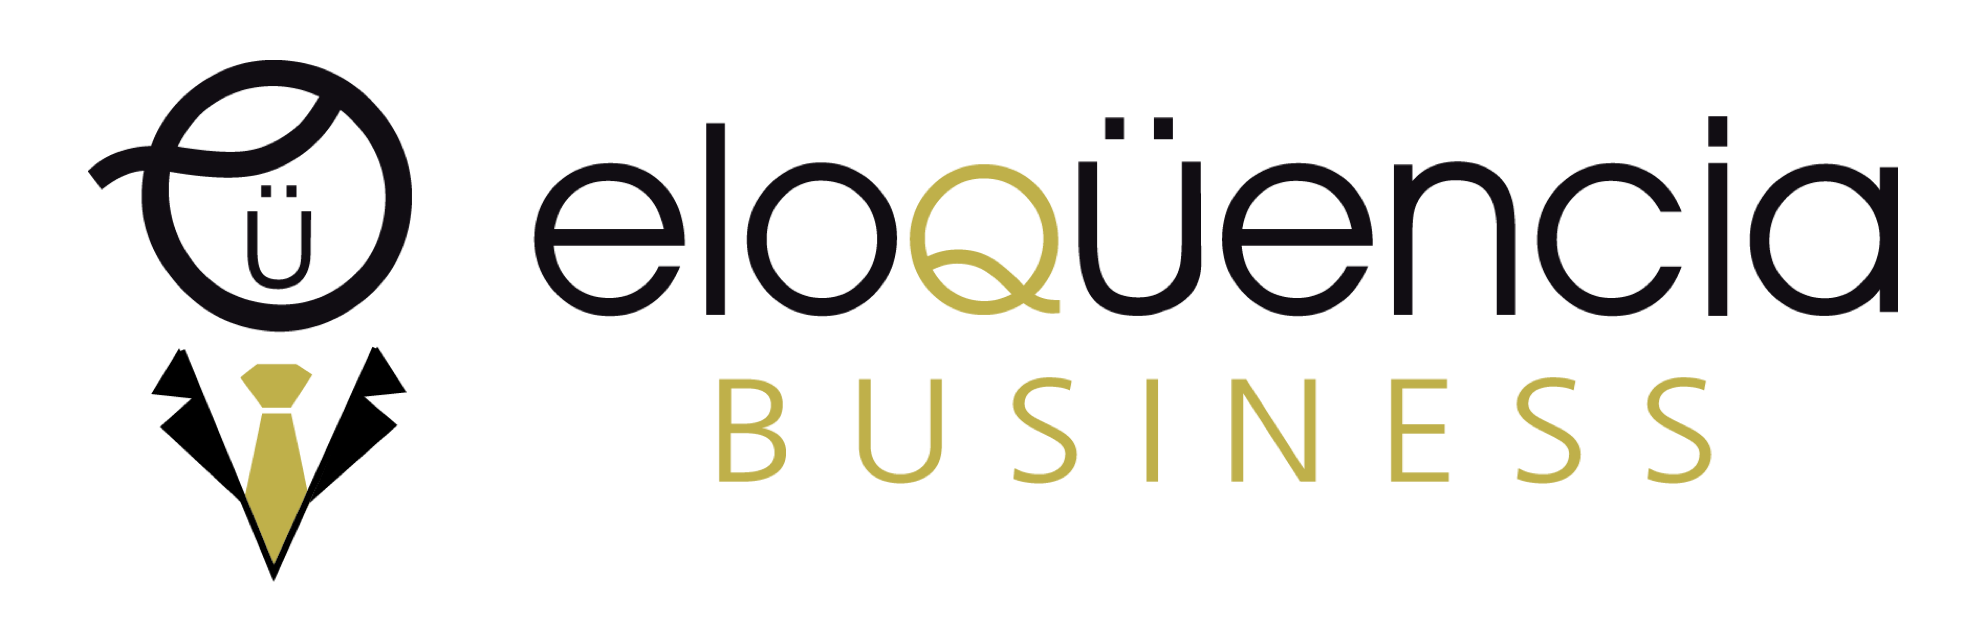 Eloqüencia Business